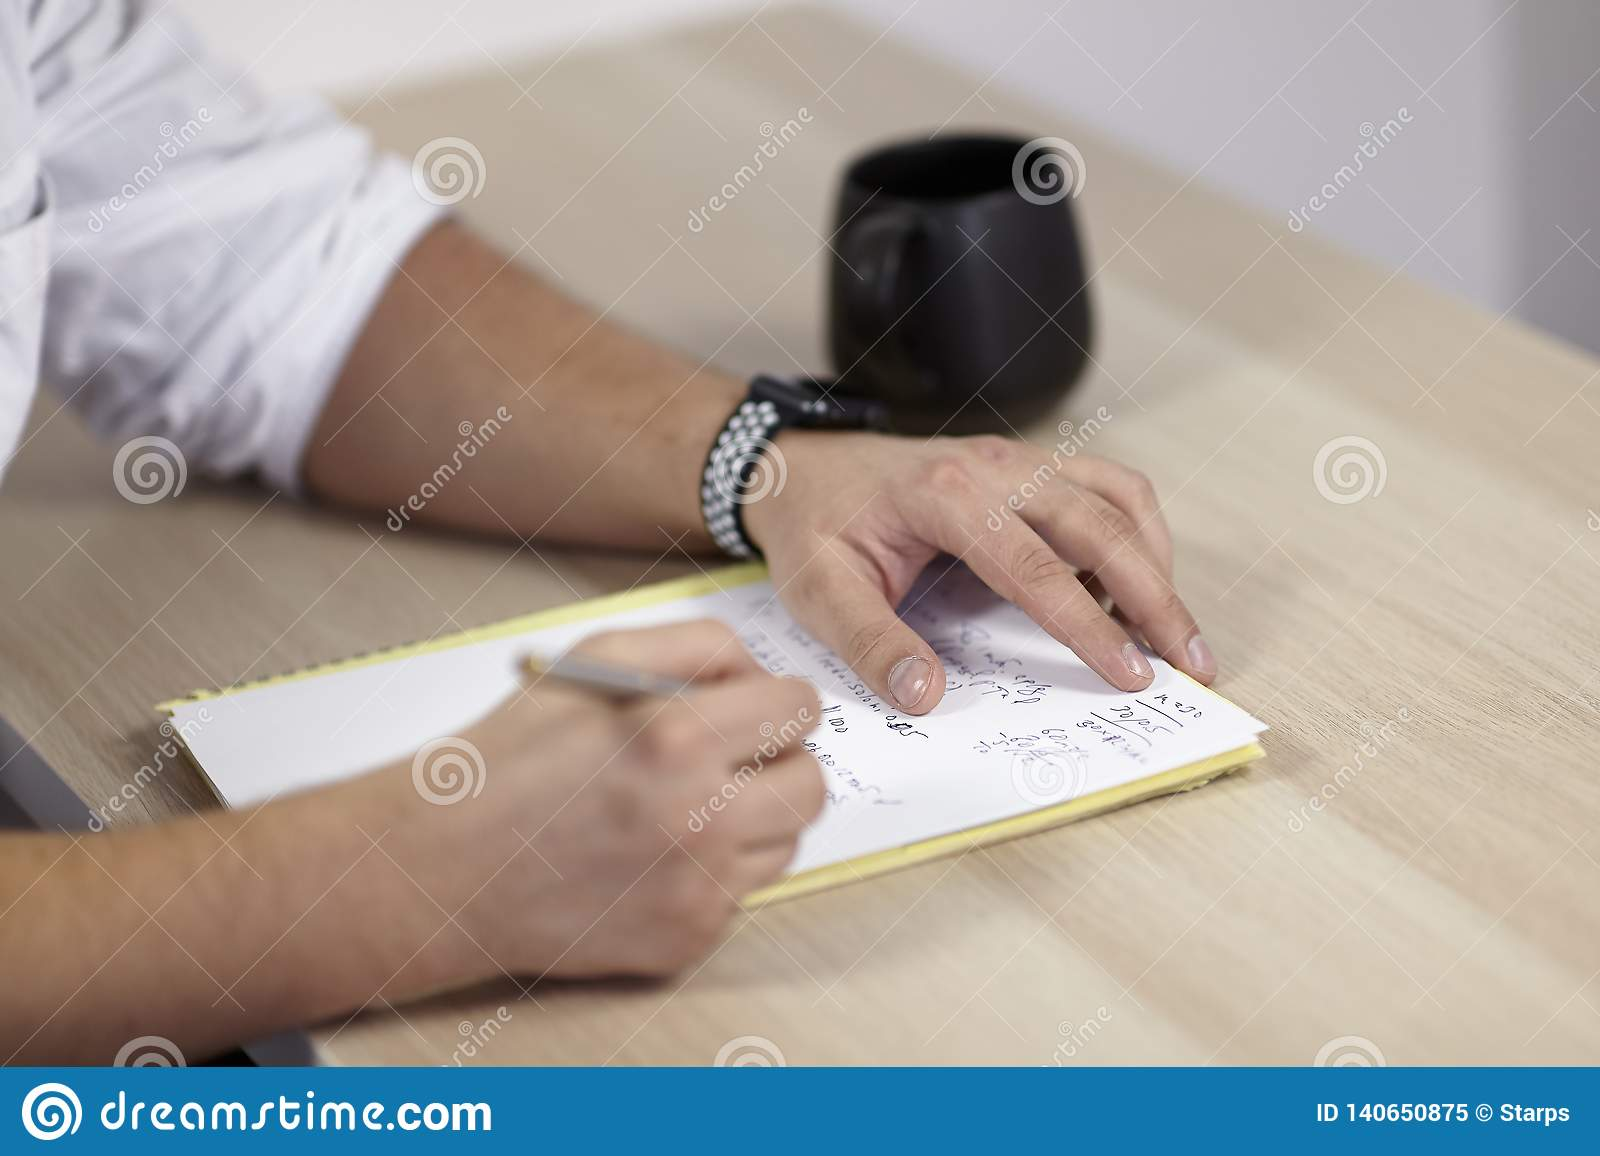 The mans hands on white outfit writes with roller pen on the paper on wooden table some latin, or medicine terms. The cup of tea